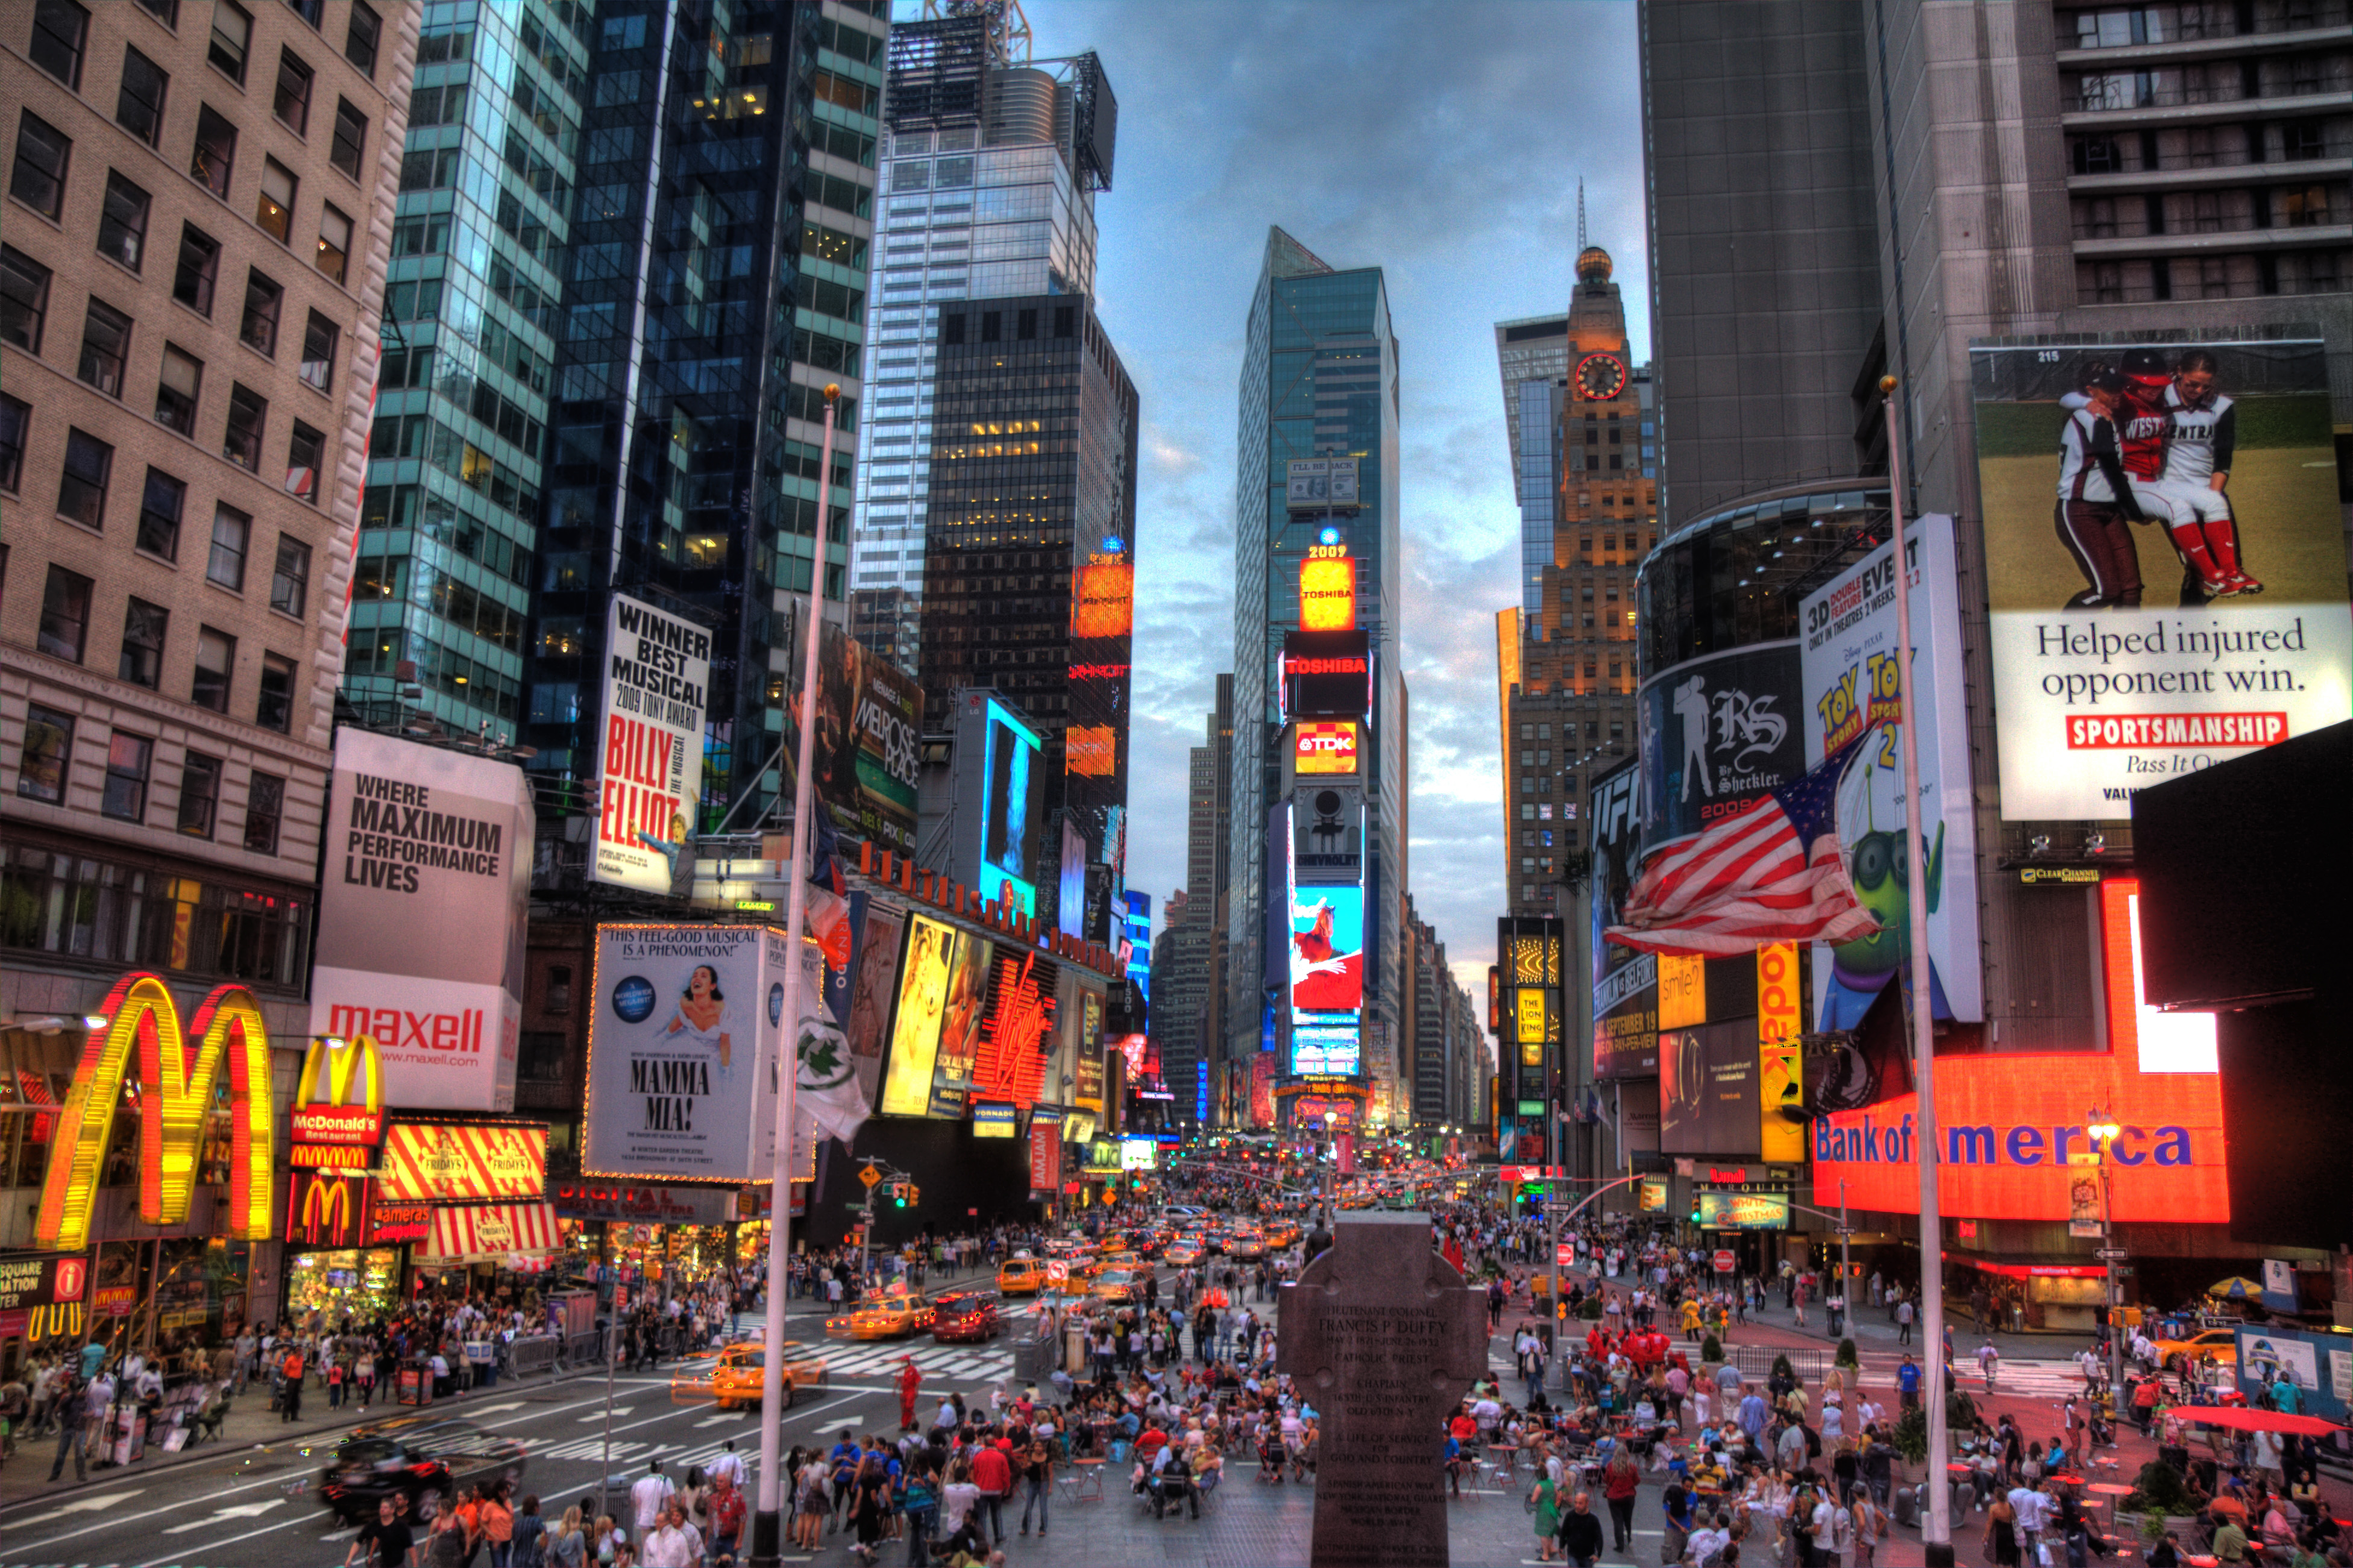 Times square new york usa city cities neon g wallpaper 3904x2602 197396 wallpaperup - Times square background ...